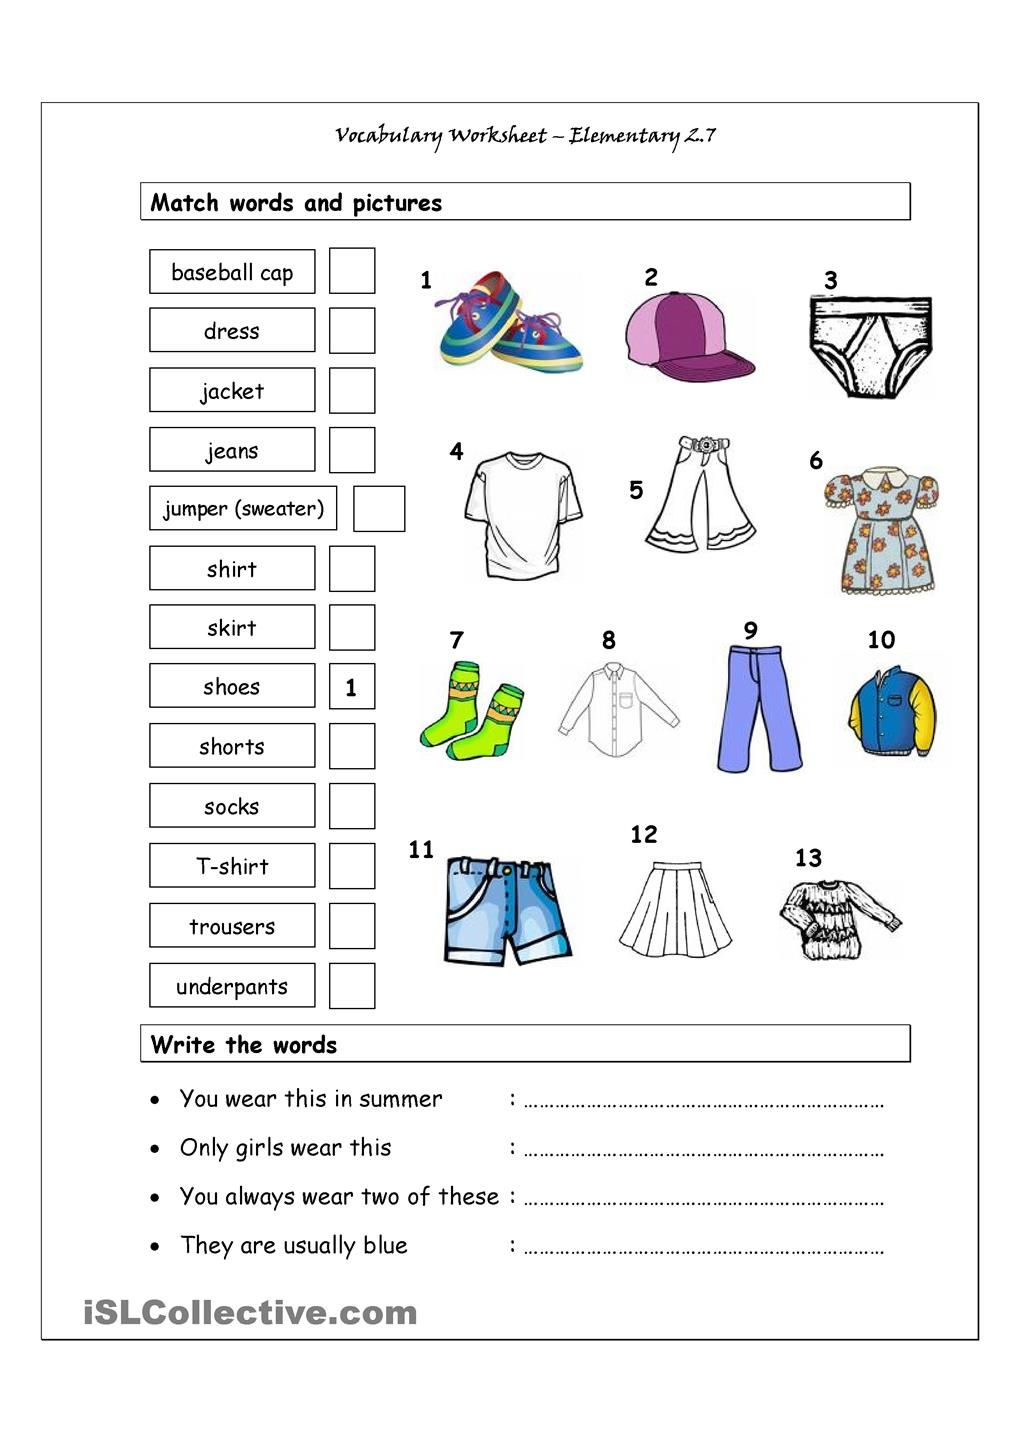 Vocabulary Matching Worksheet - Elementary 2.7 (CLOTHES) | Toddlers ...